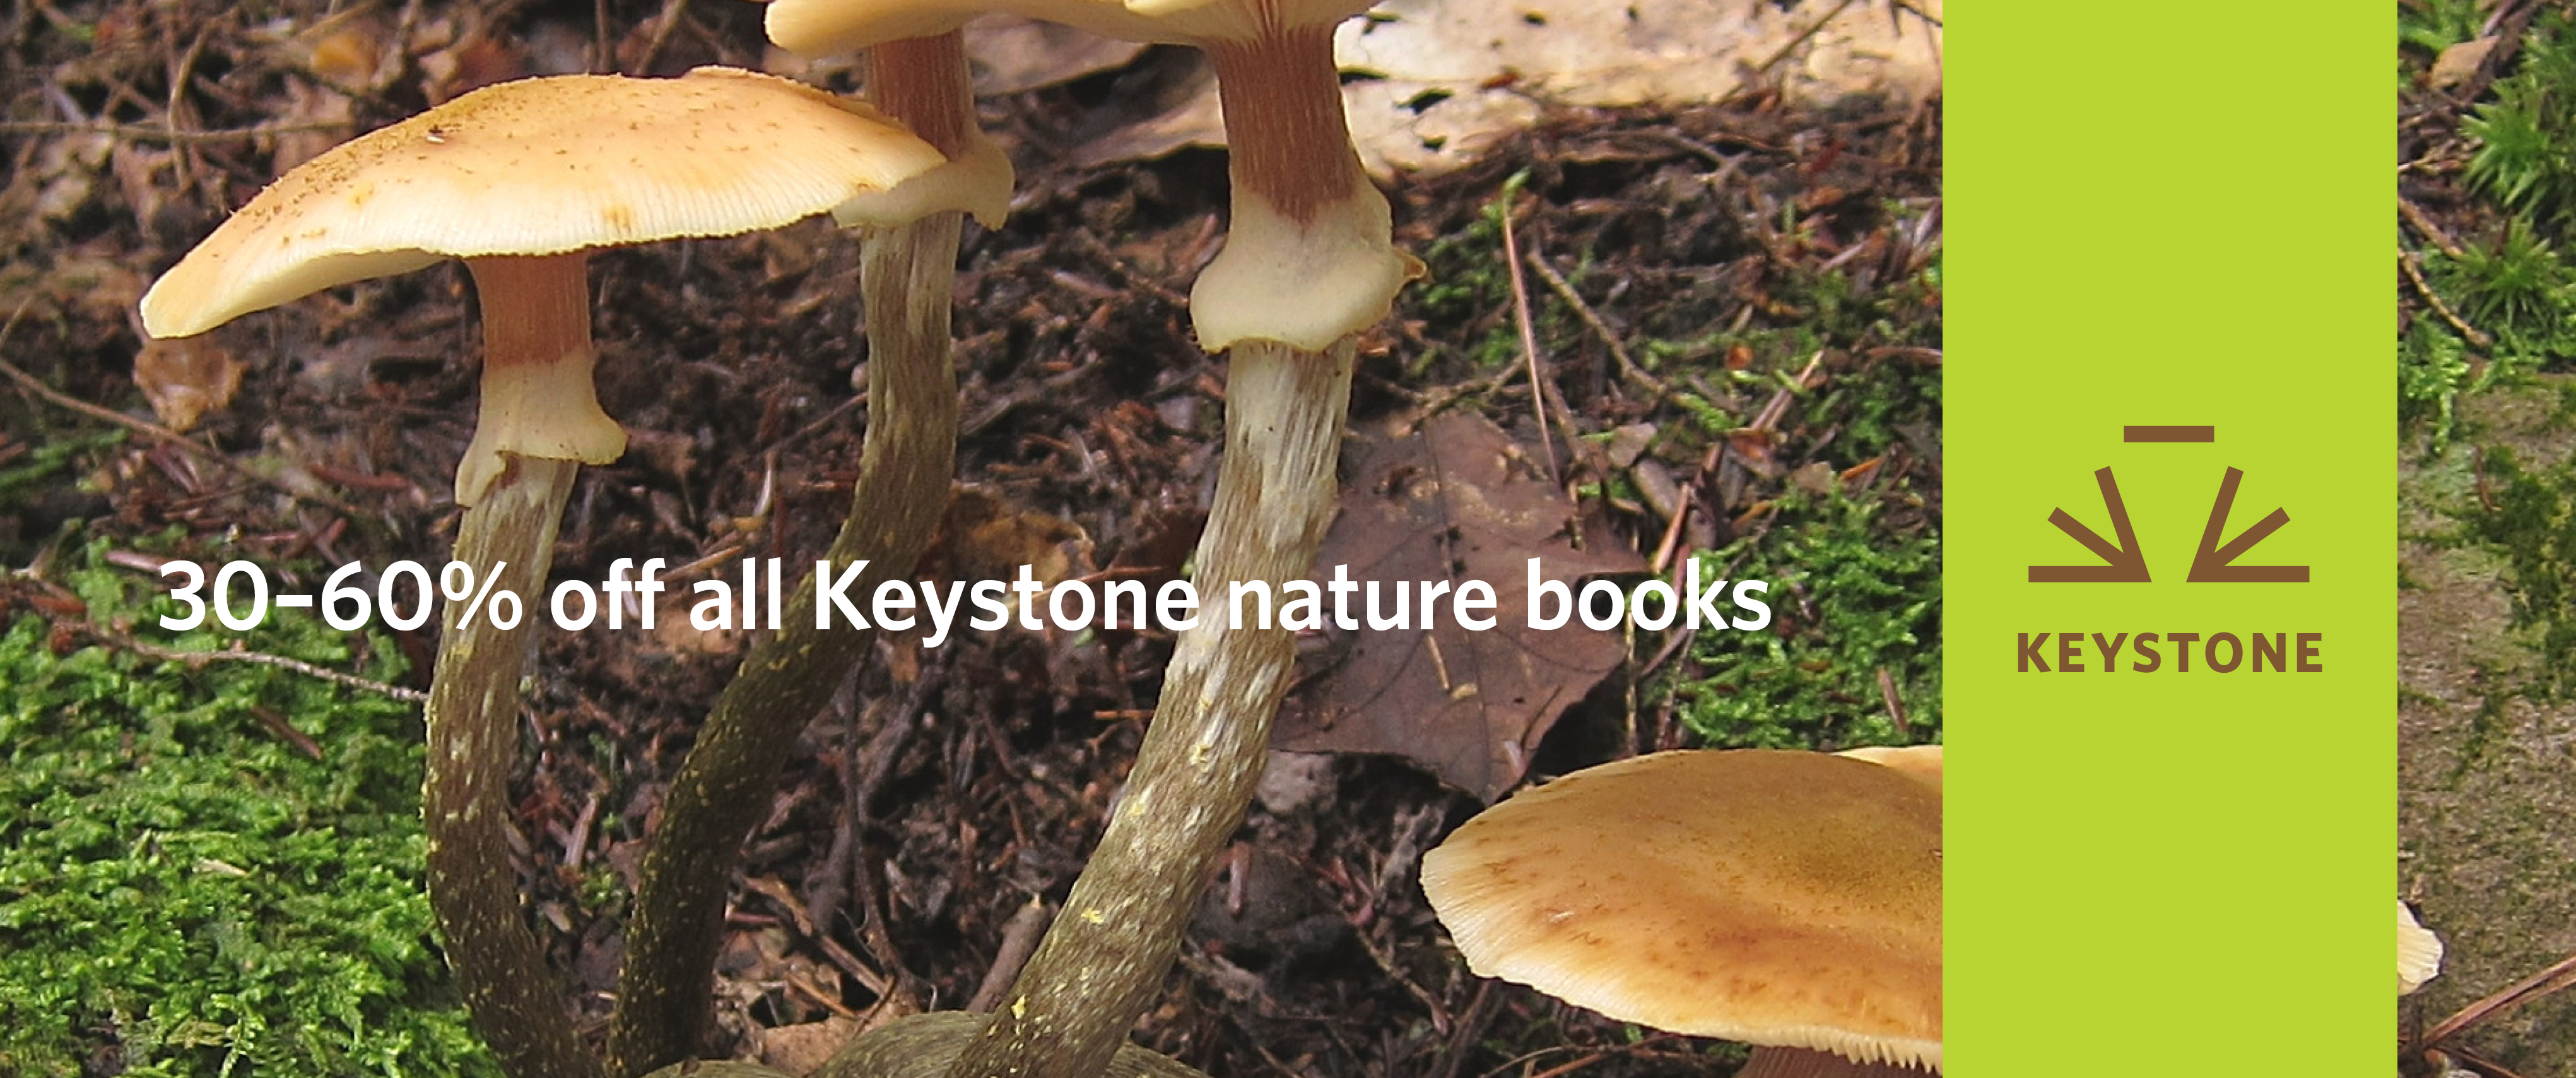 Keystone nature sale